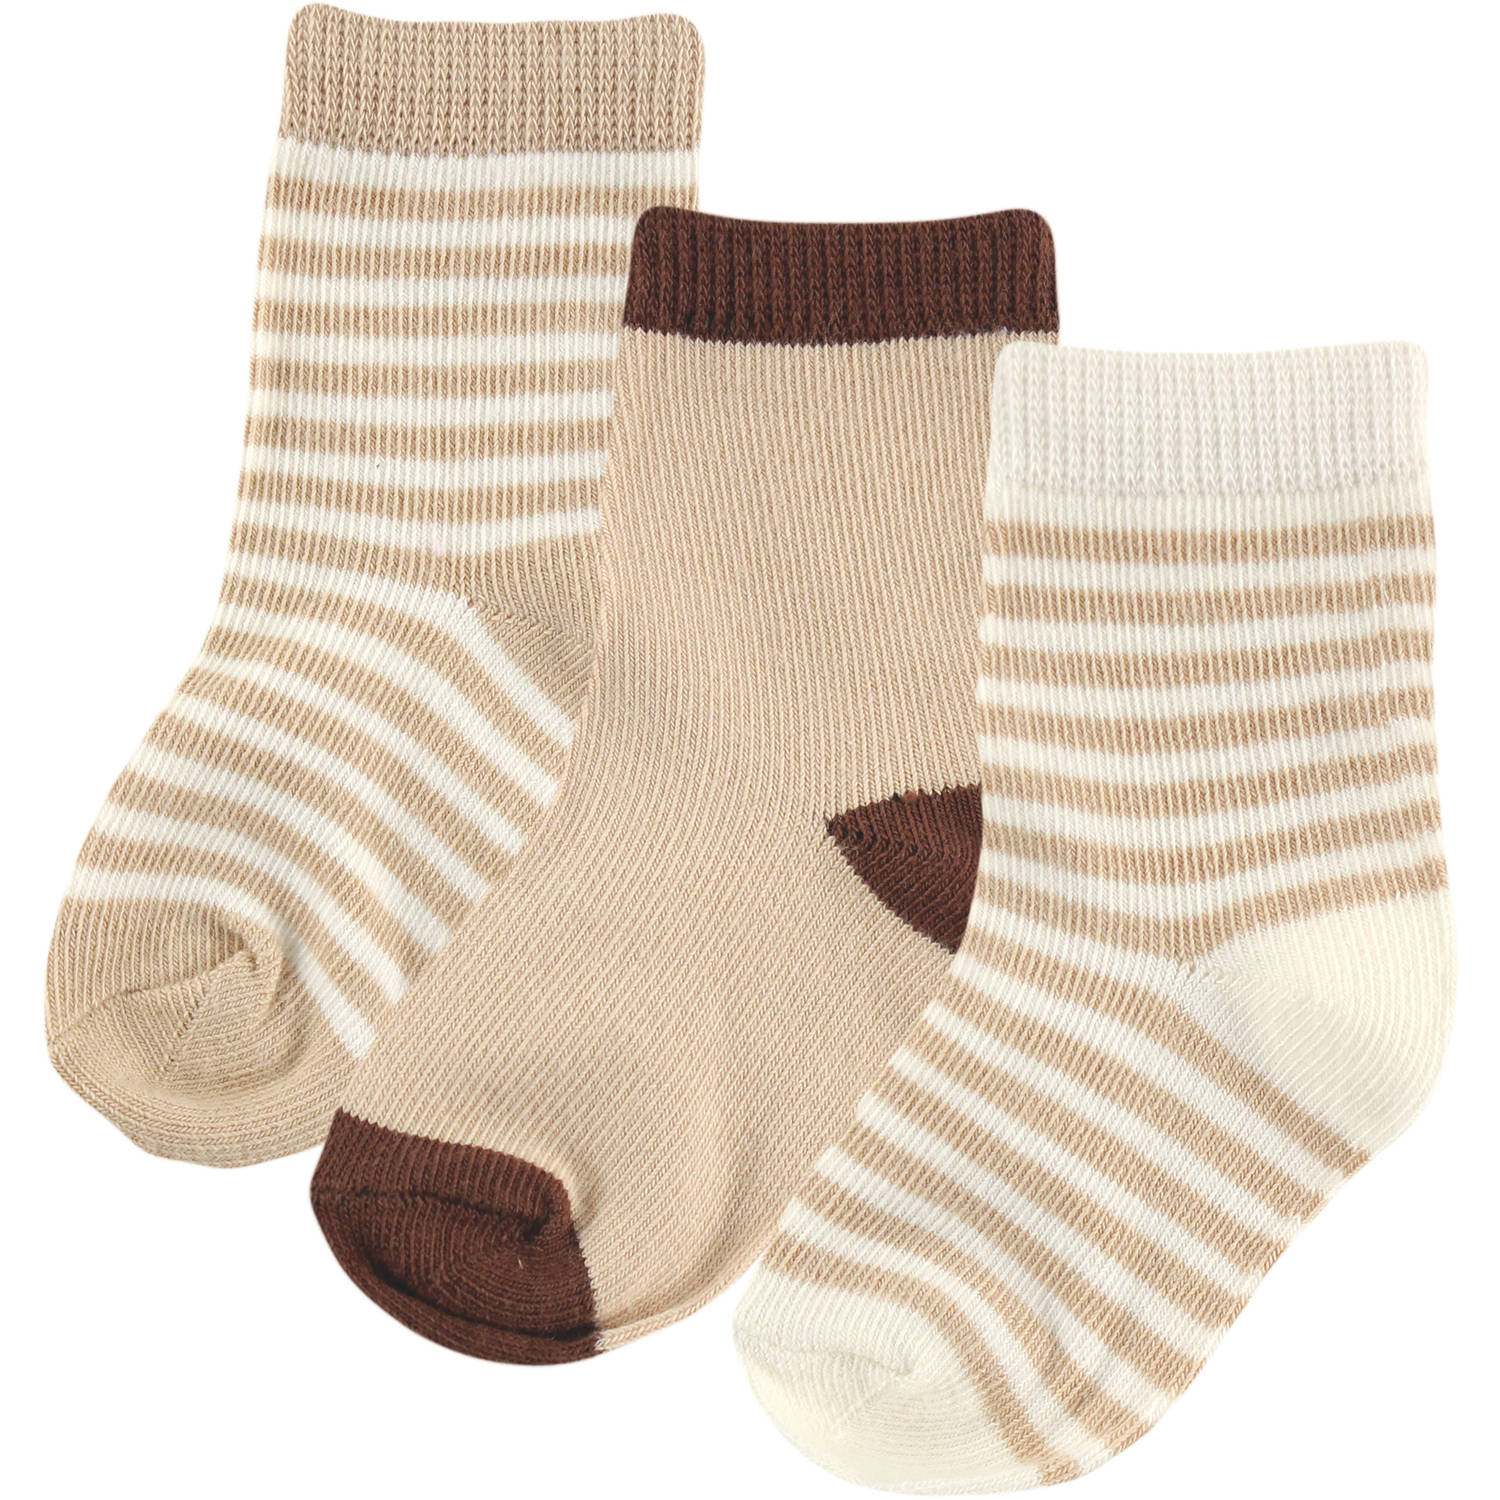 Touched By Nature 100% Organic Cotton Newborn Baby Clothes Boy or Girl Unisex Socks 3-Pack